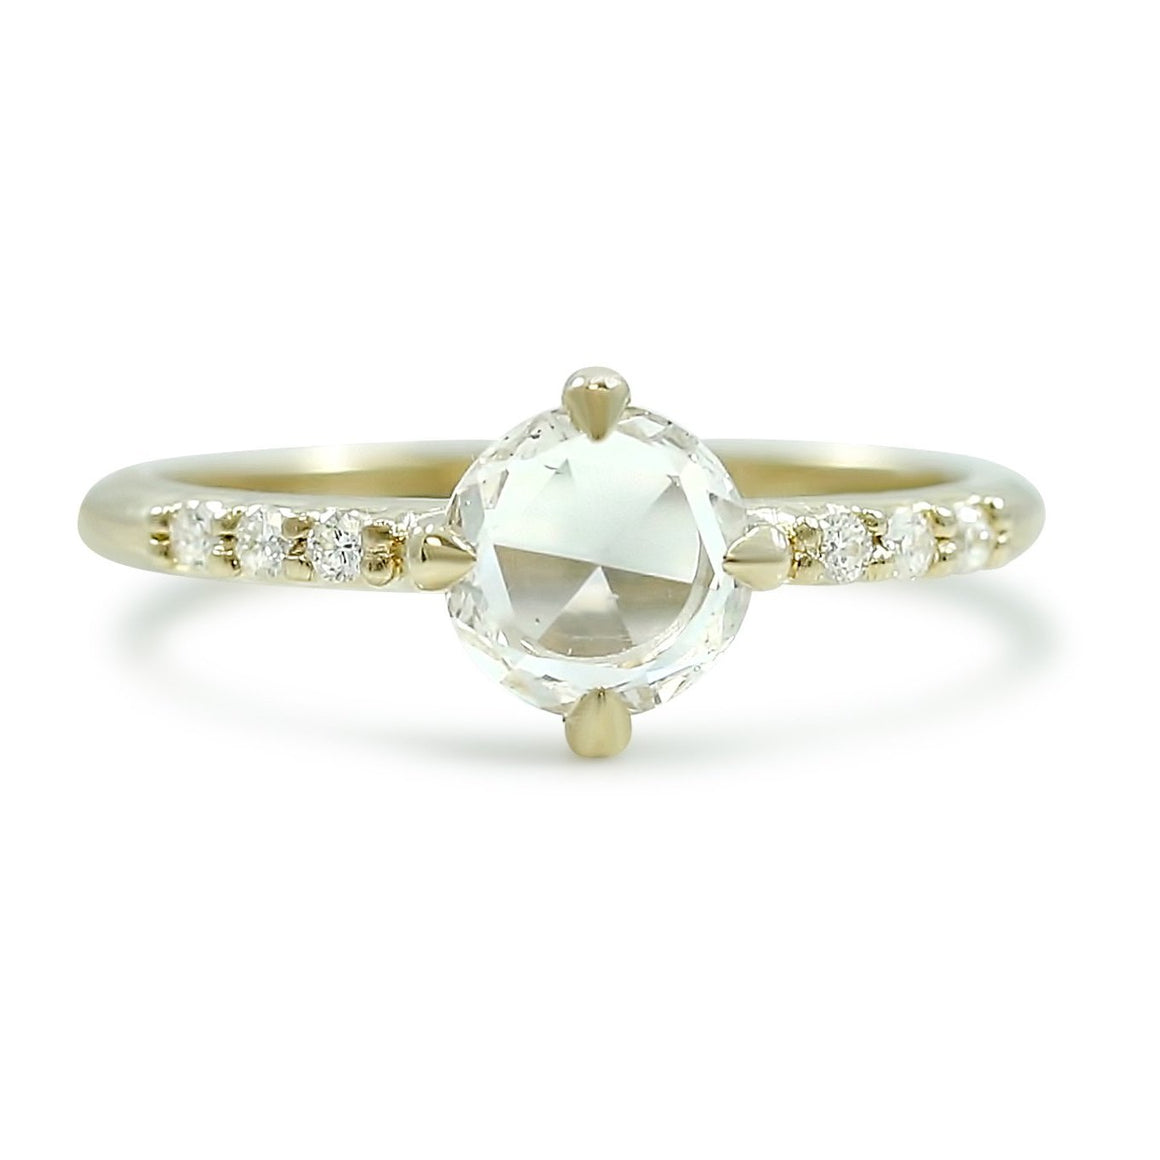 north south east west set rose cut diamond engagement ring with a recycled yellow gold band